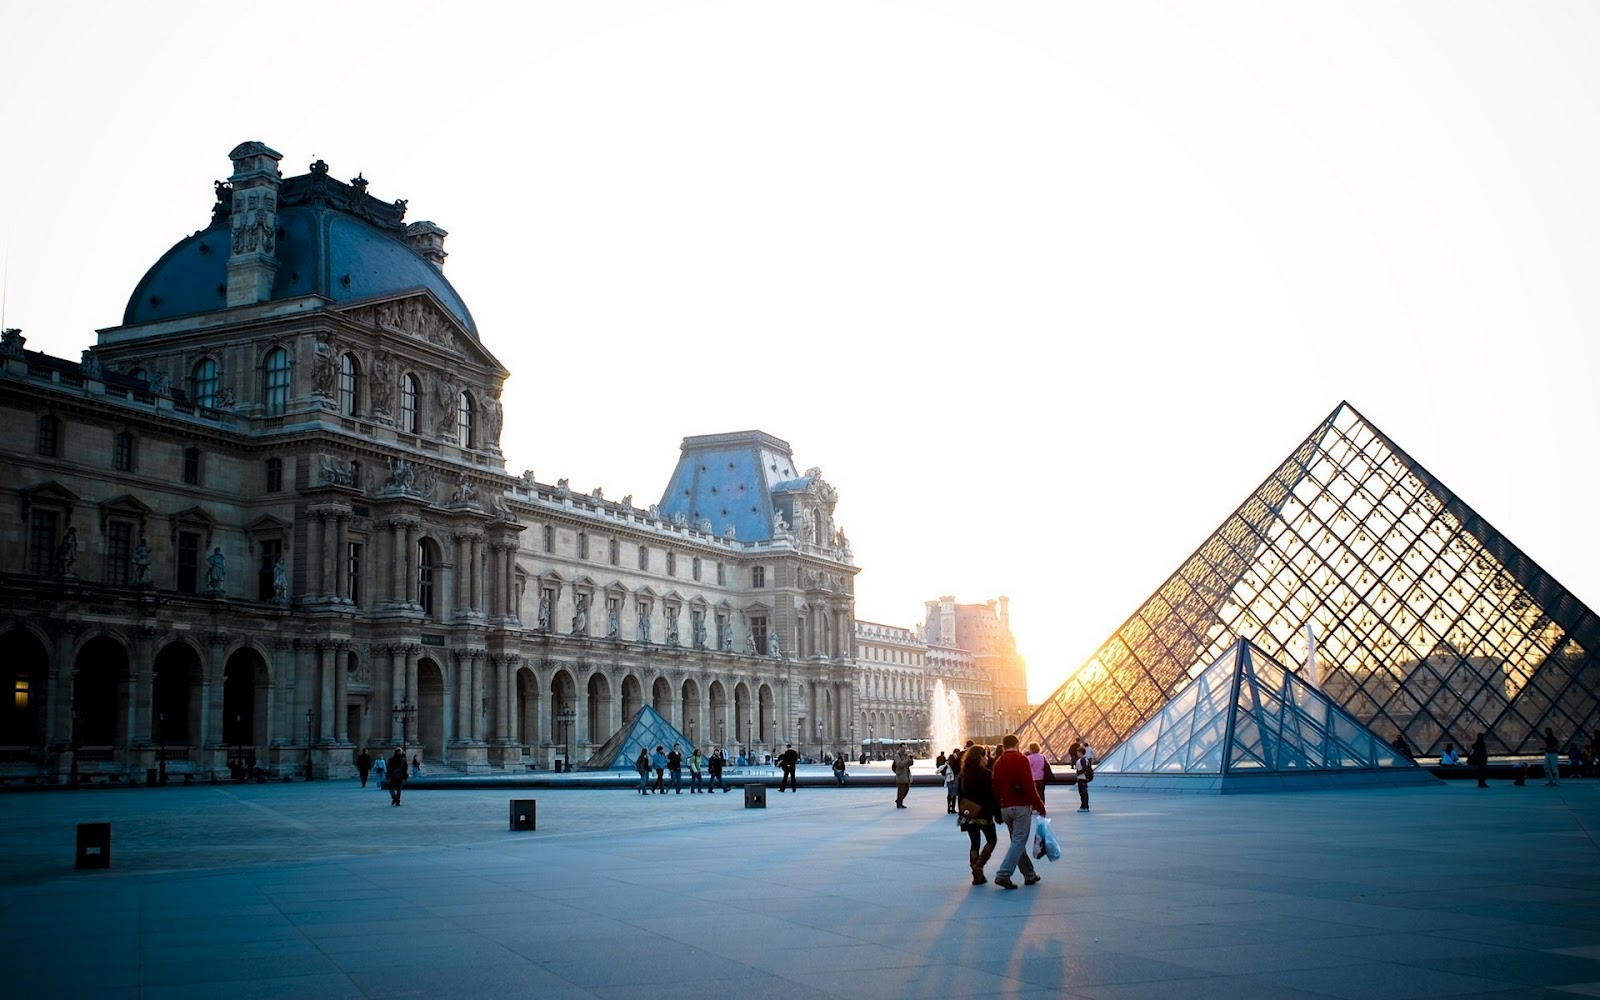 Paris louvre glass pyramid hd wallpapers hd wallpapers - Louvre architekt ...